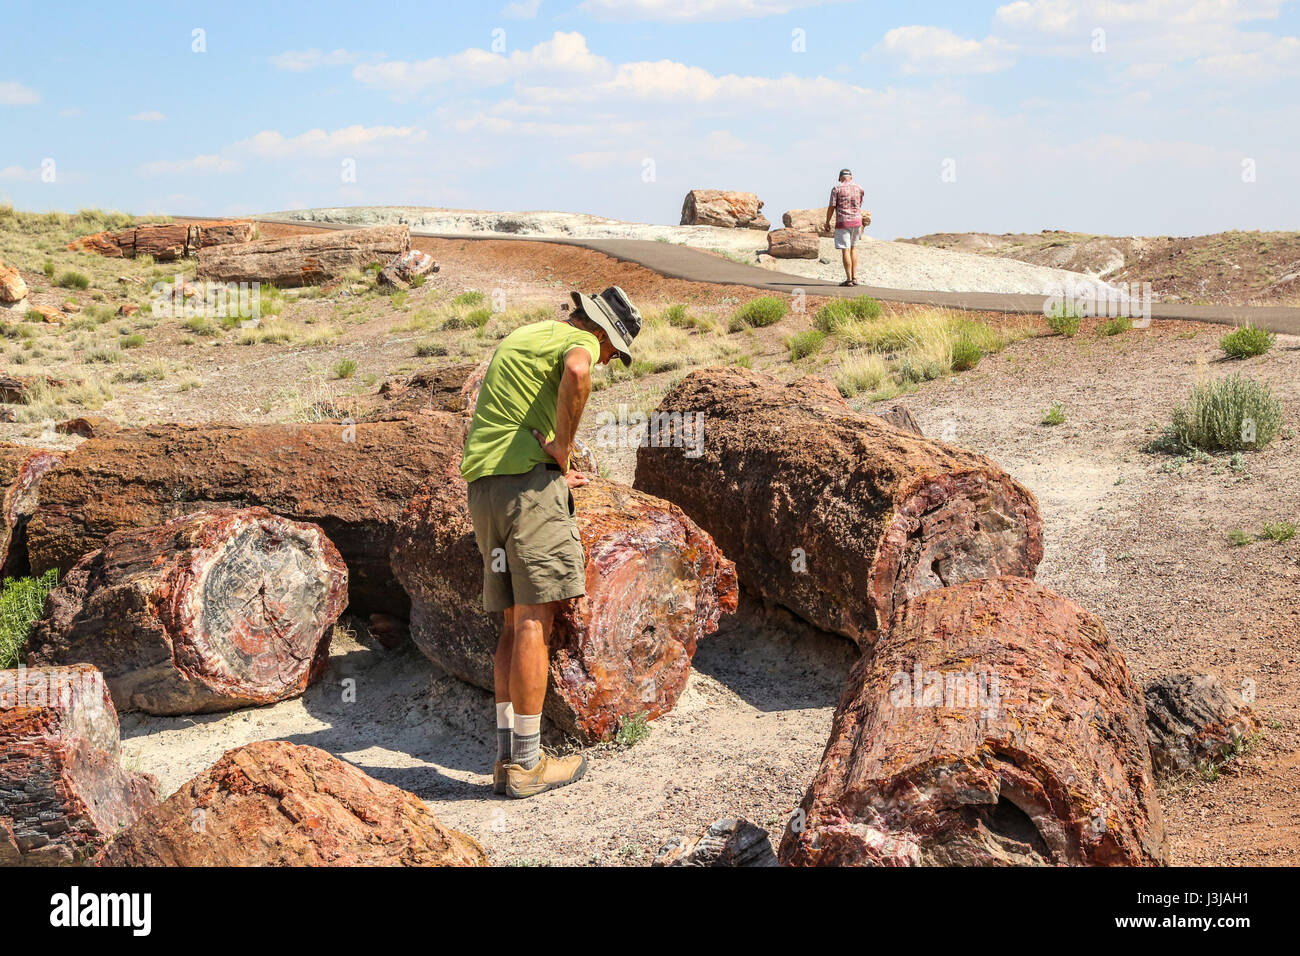 Sections of logs of the Petrified Forest Lying about in Arizona - Stock Image